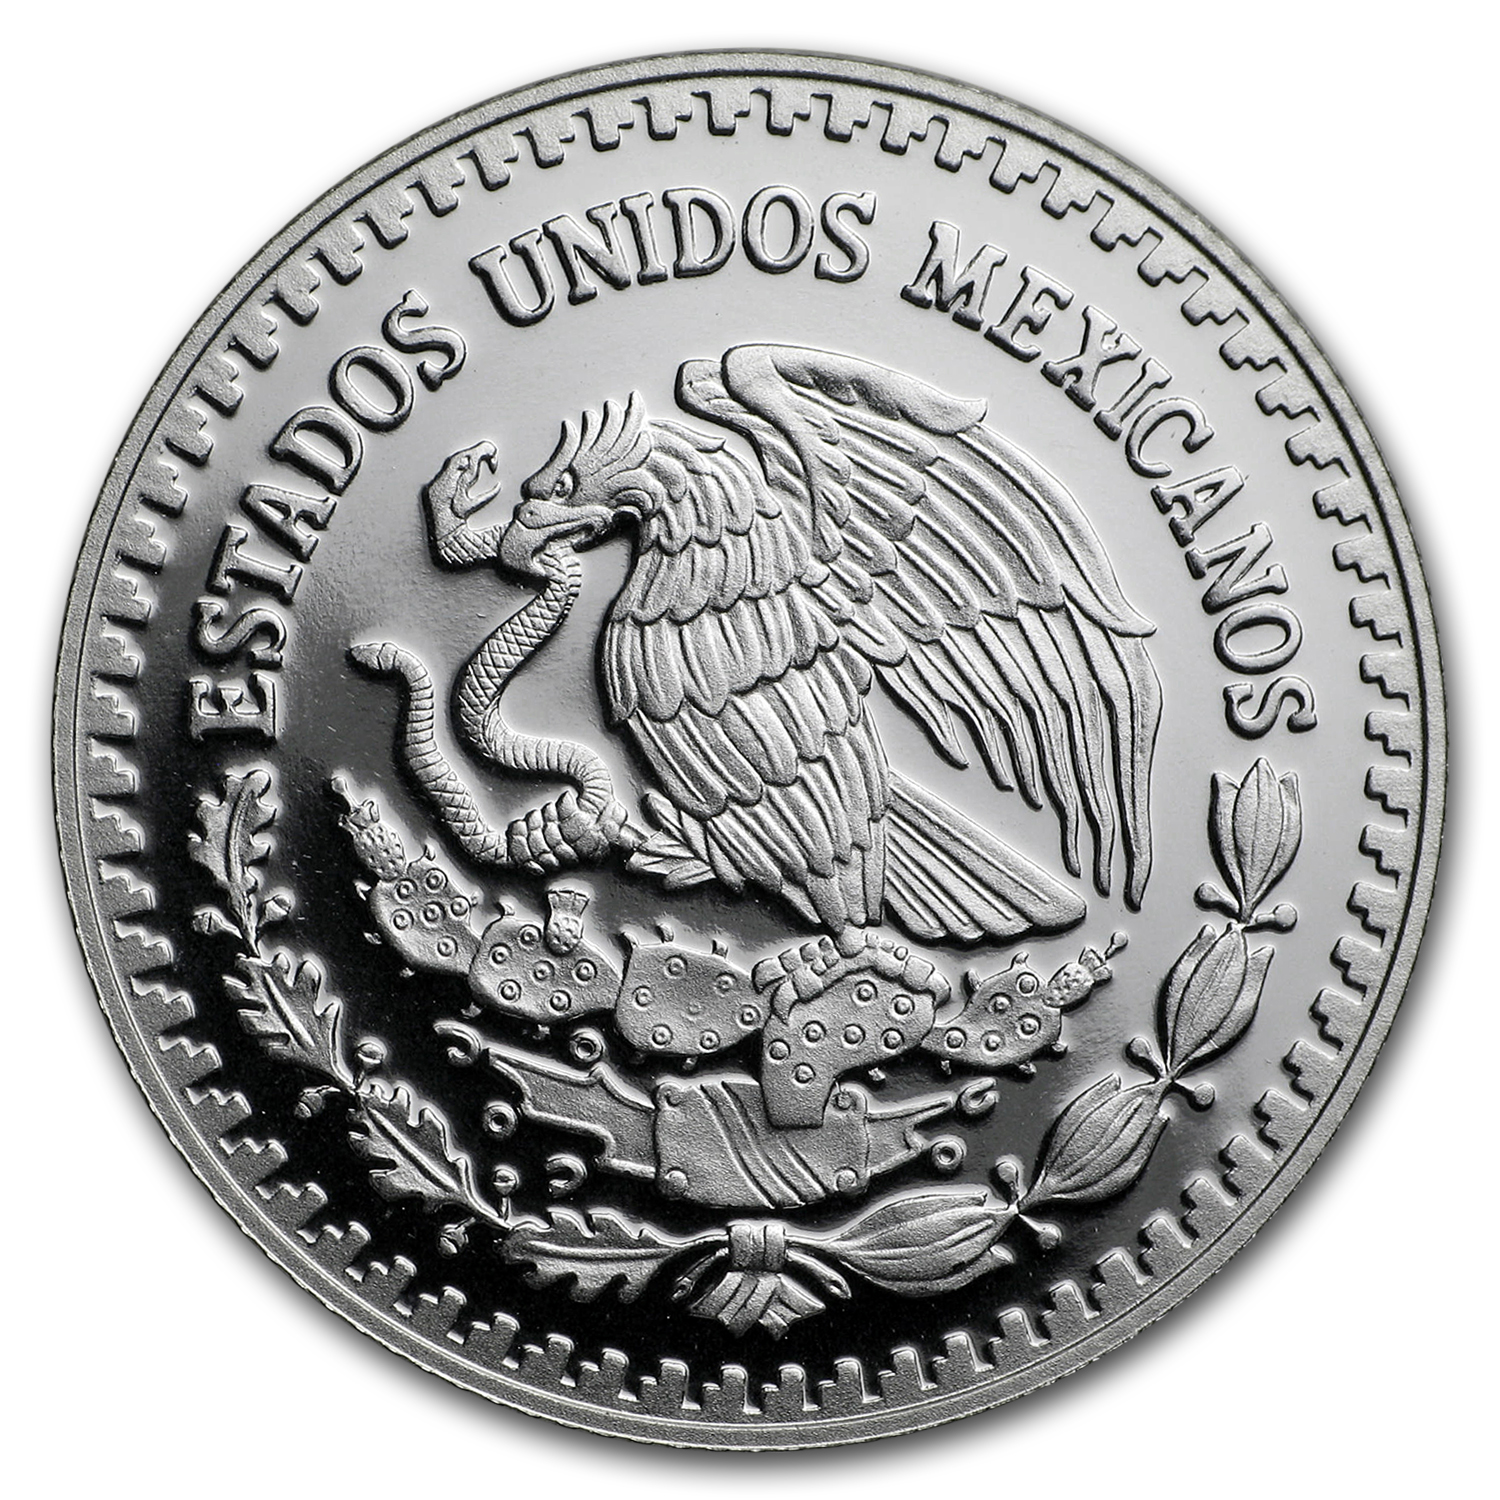 2010 1/4 oz Silver Mexican Libertad - Proof (In Capsule)